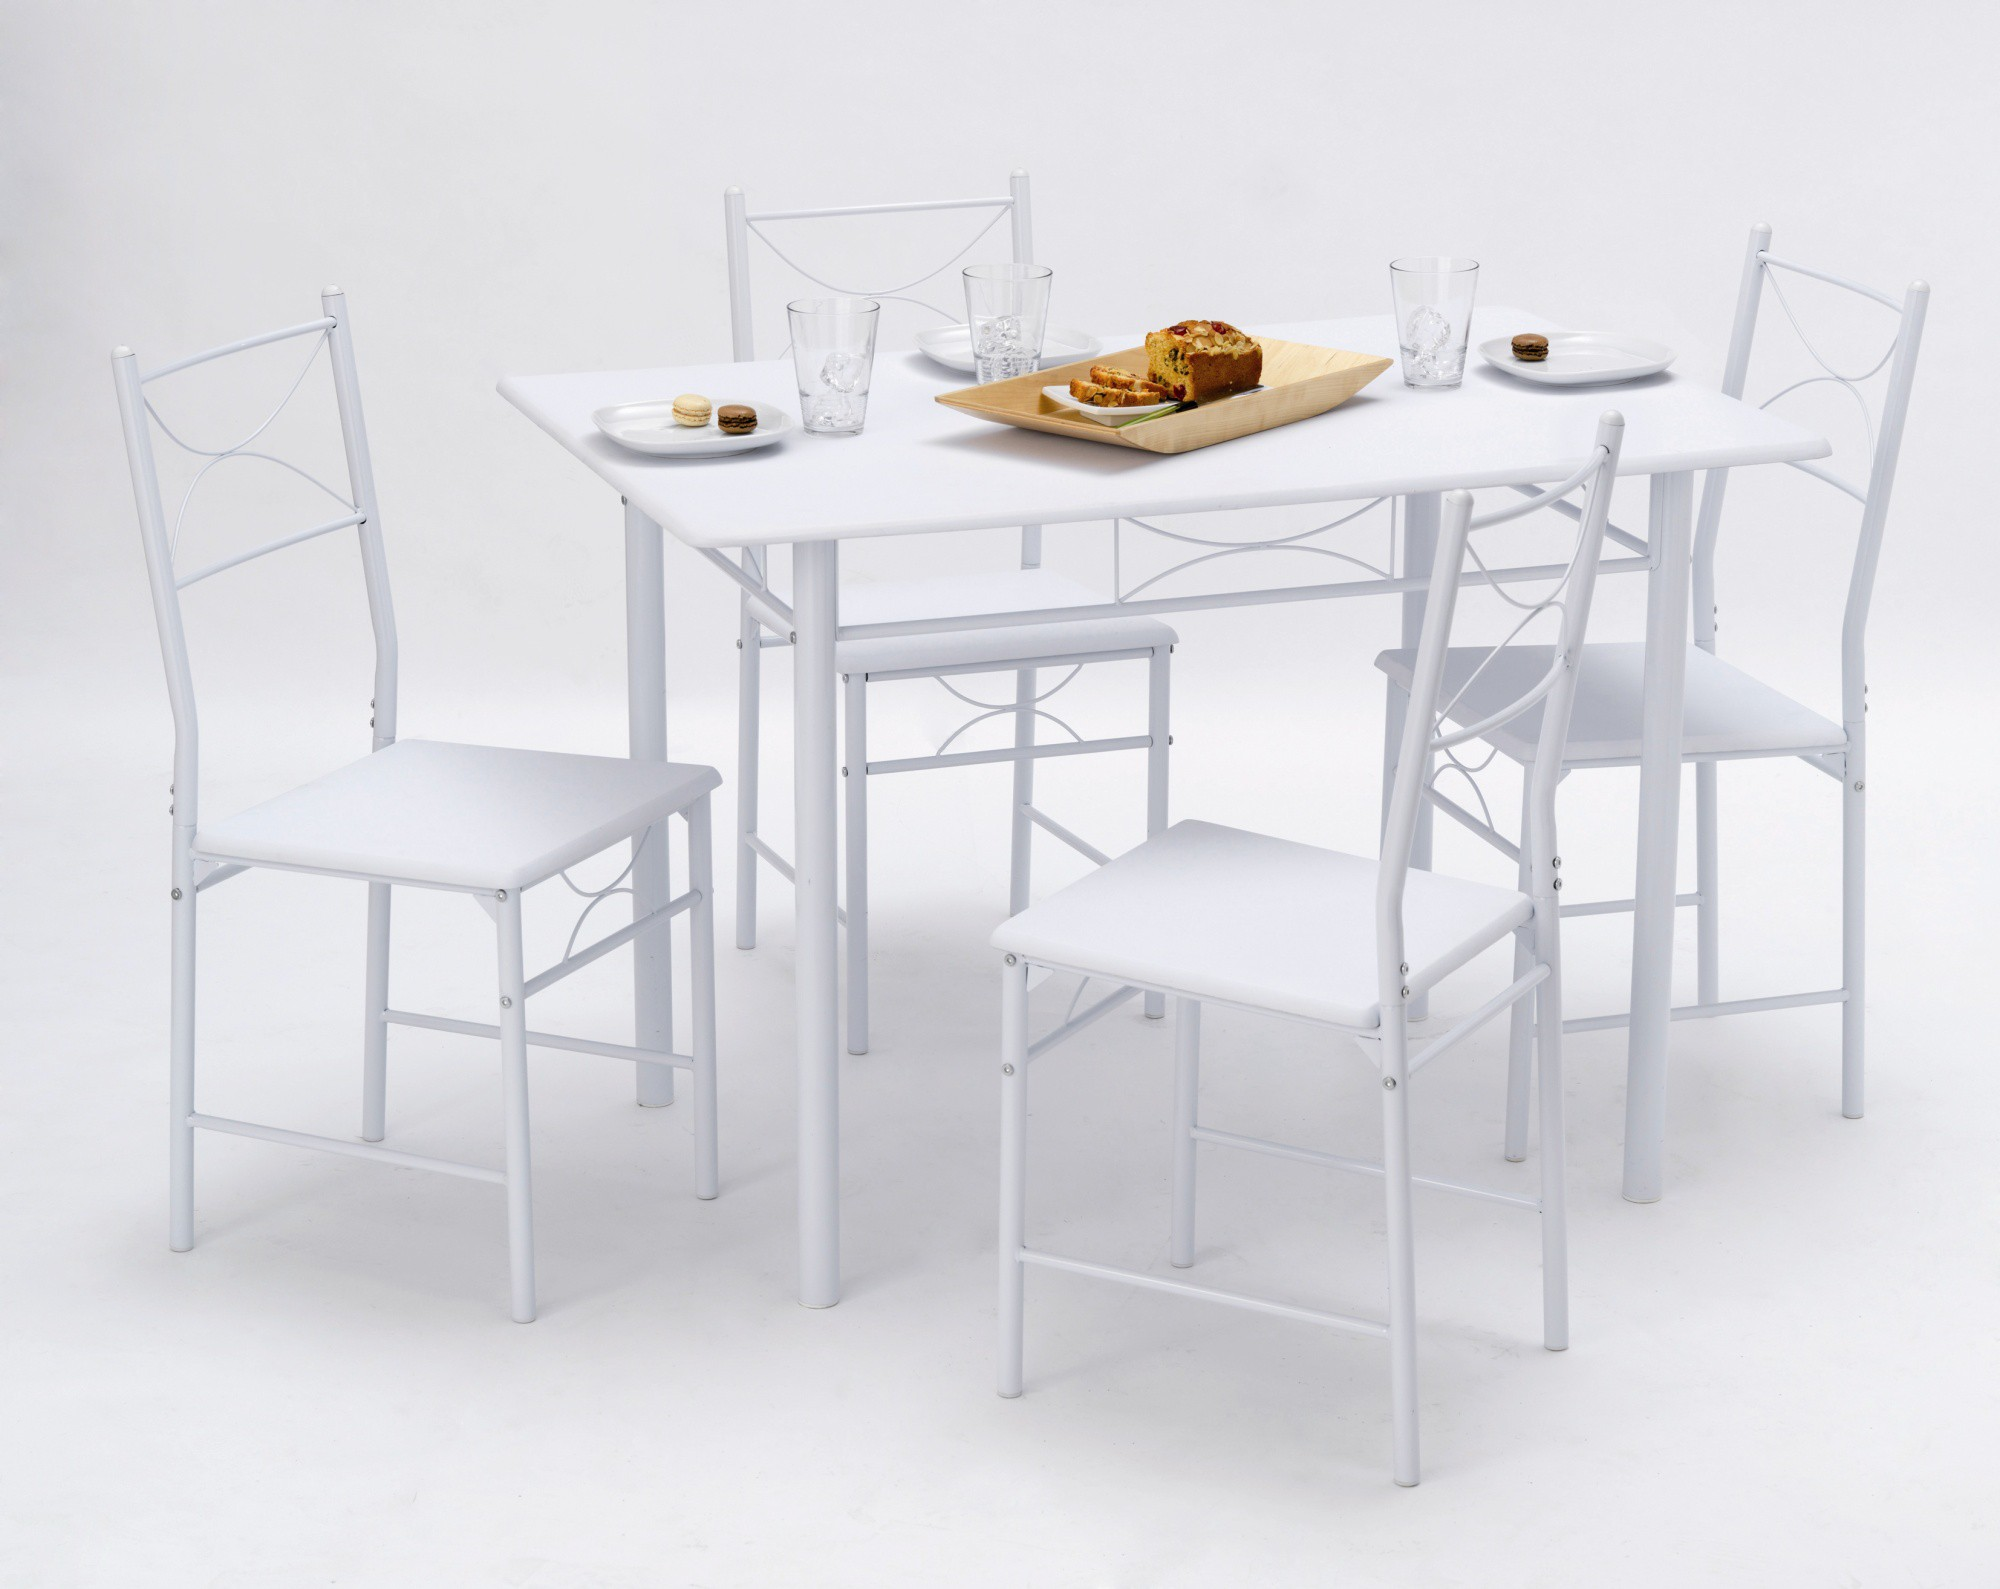 Table et chaise de cuisine moderne le monde de l a - Table et chaise moderne ...